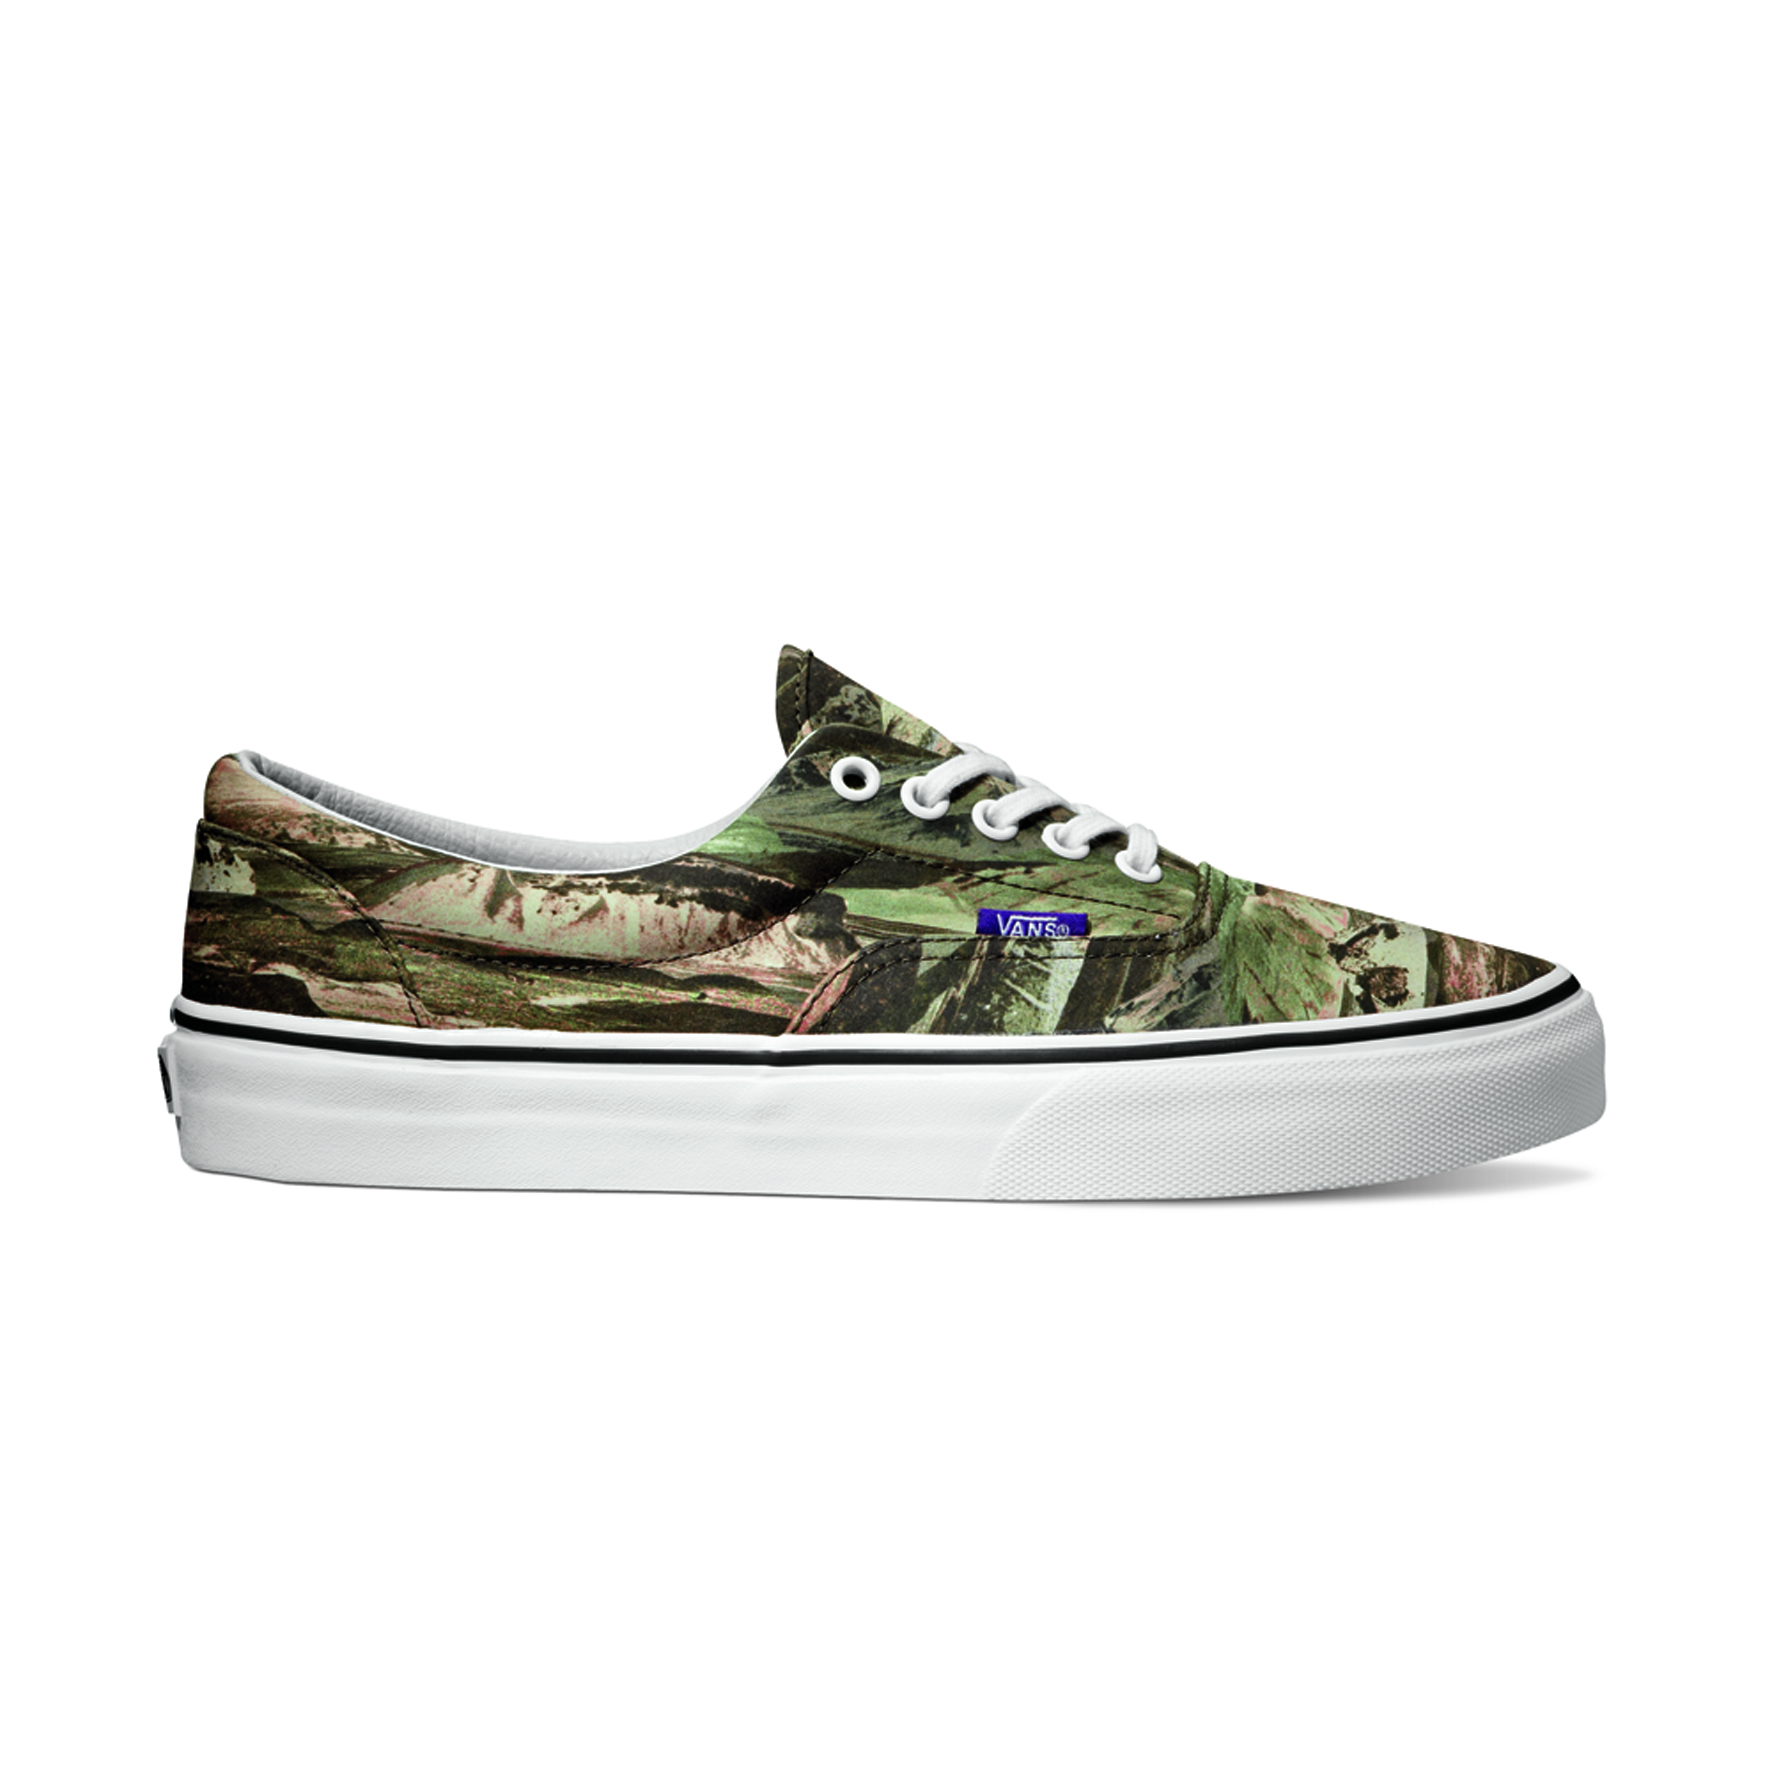 Vans Militari turismolastminute.it